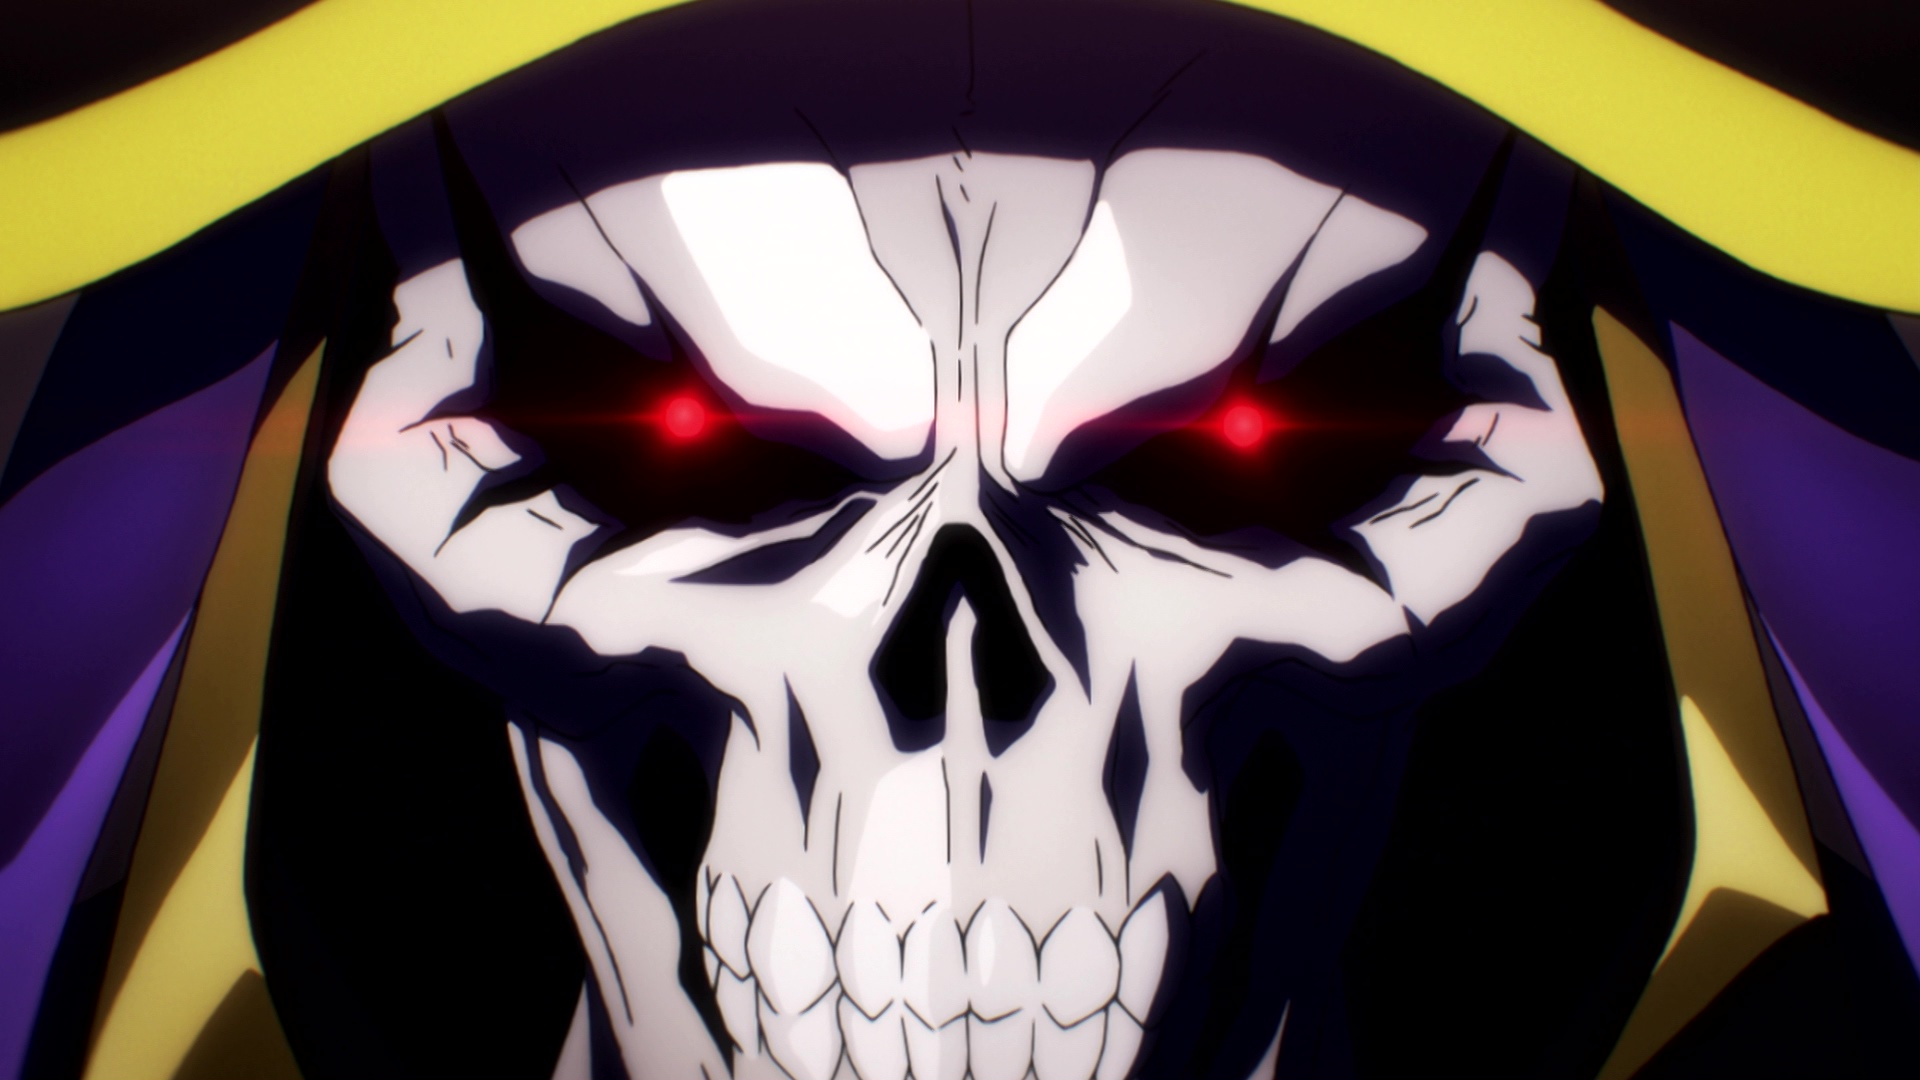 Watch Overlord Season 1 Episode 1 Sub & Dub | Anime Uncut